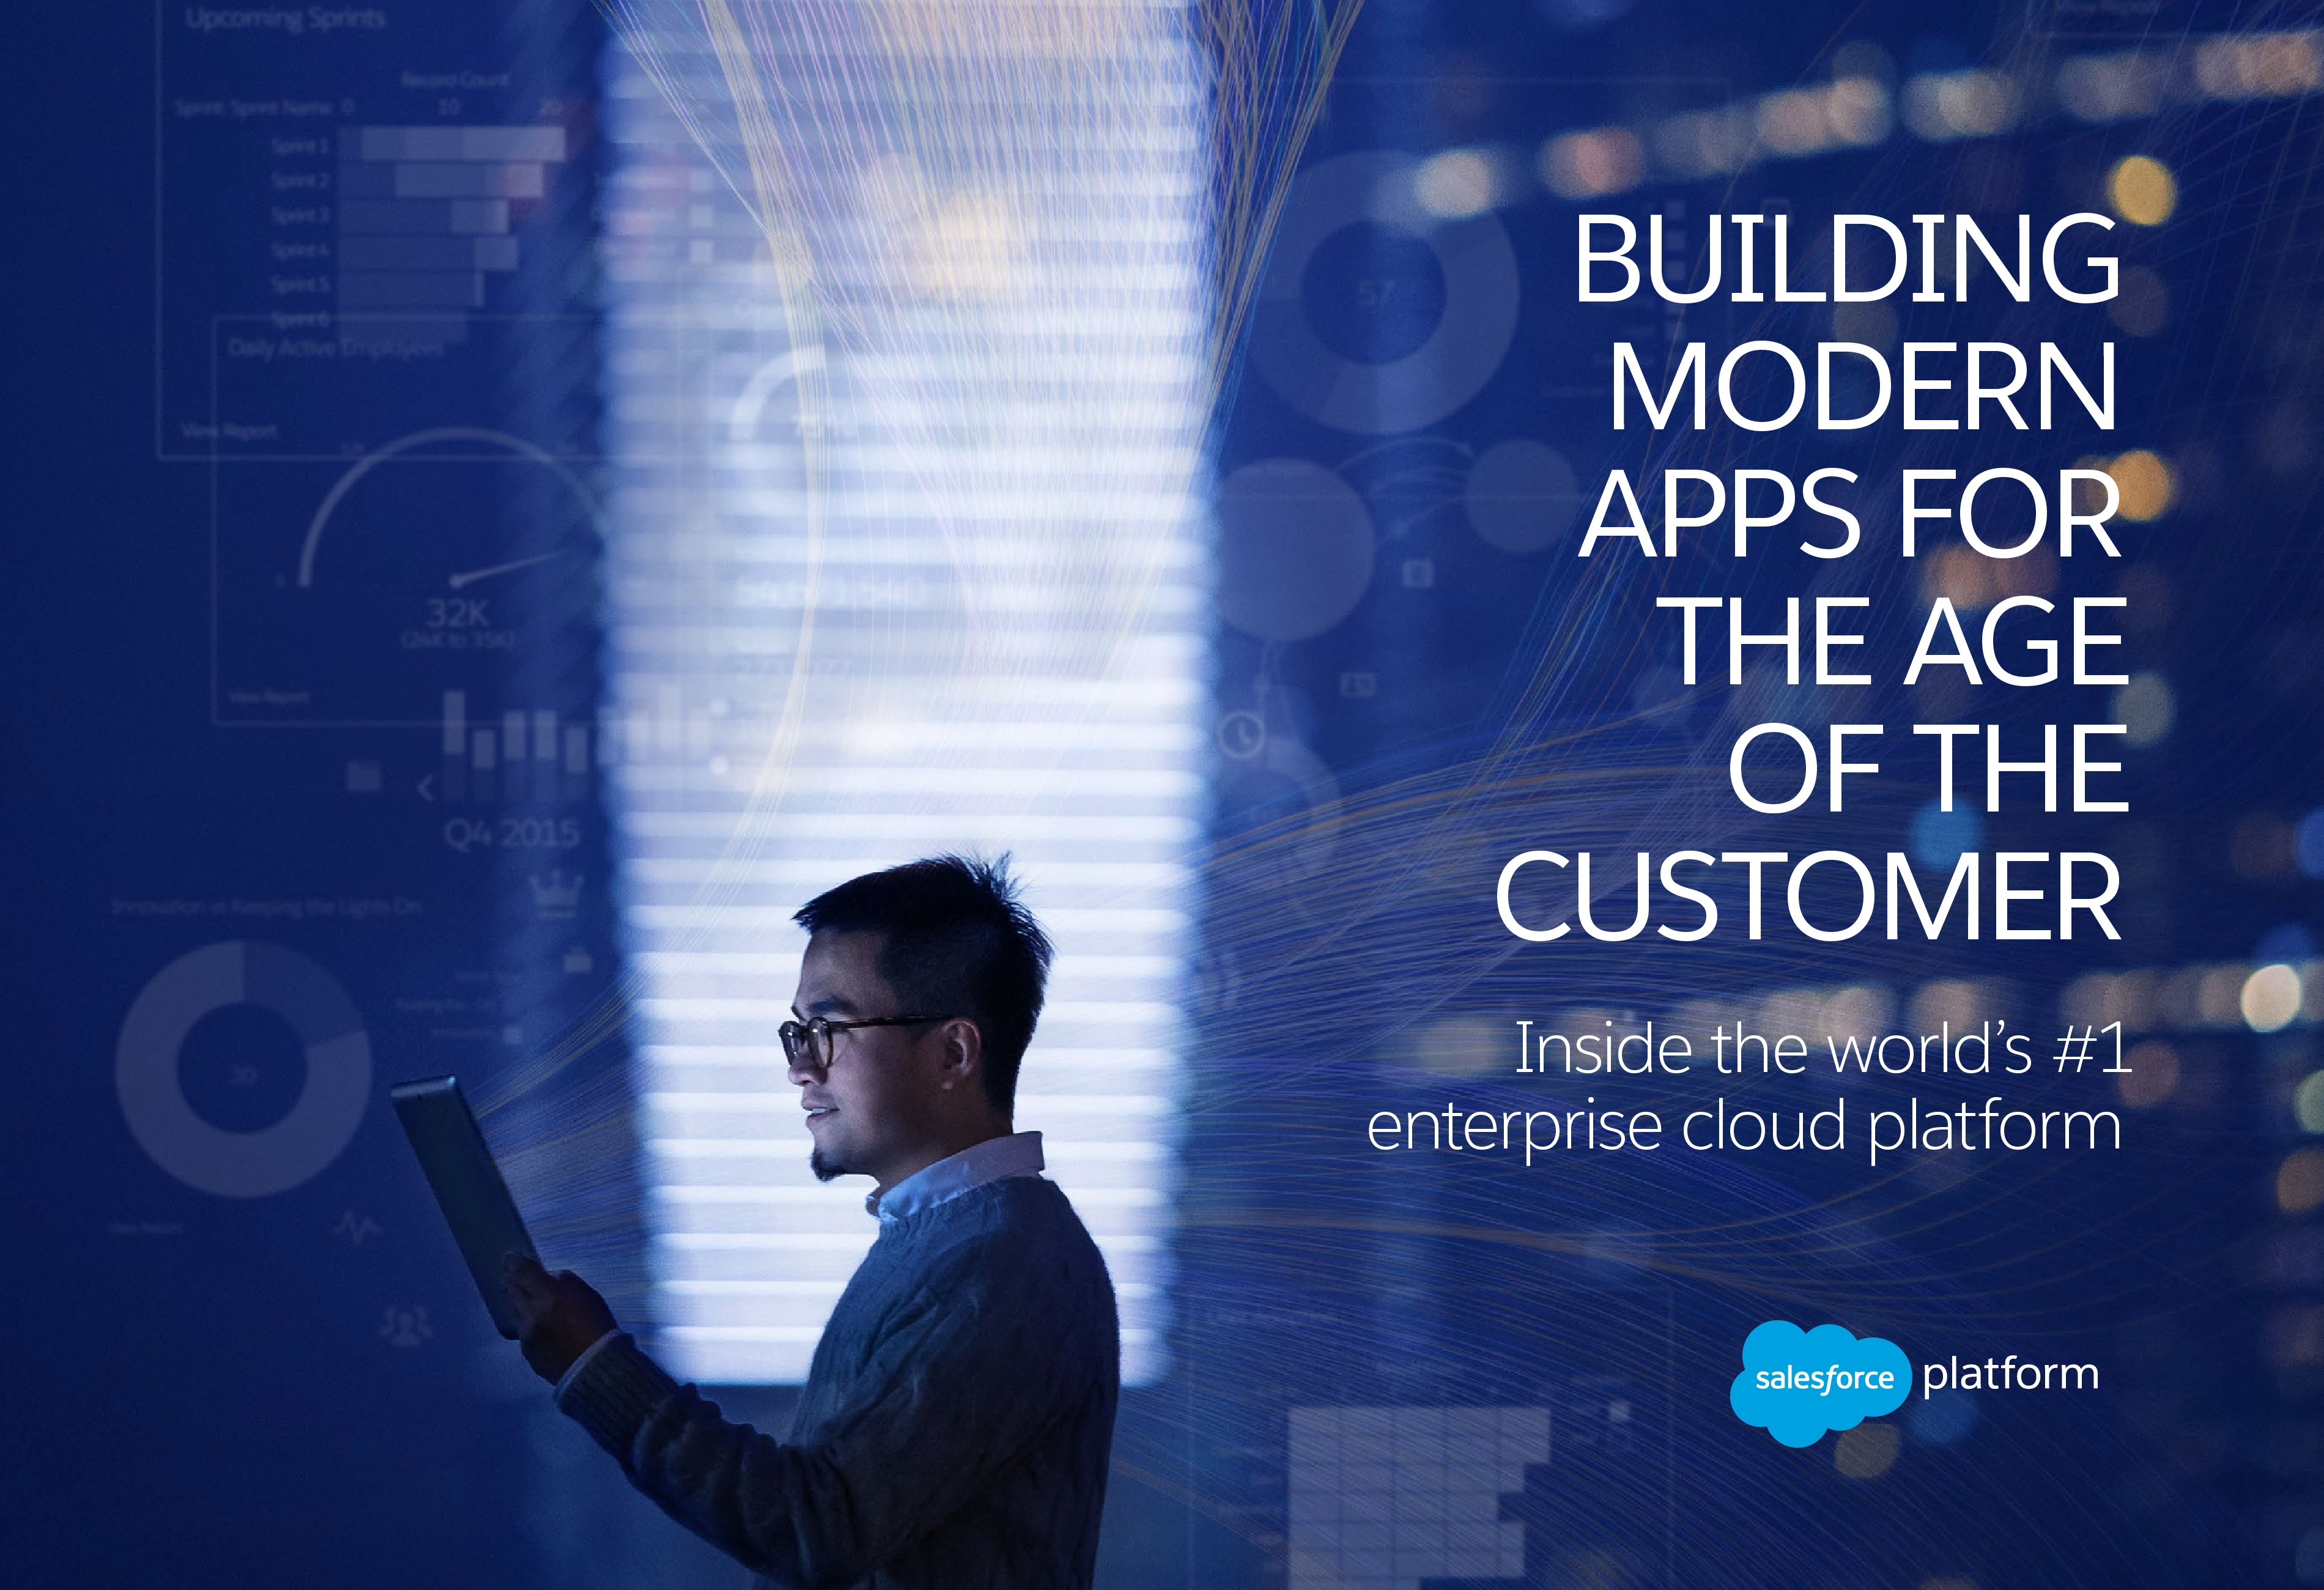 GOV - Salesforce - 2018 Microsite - Building Modern Apps